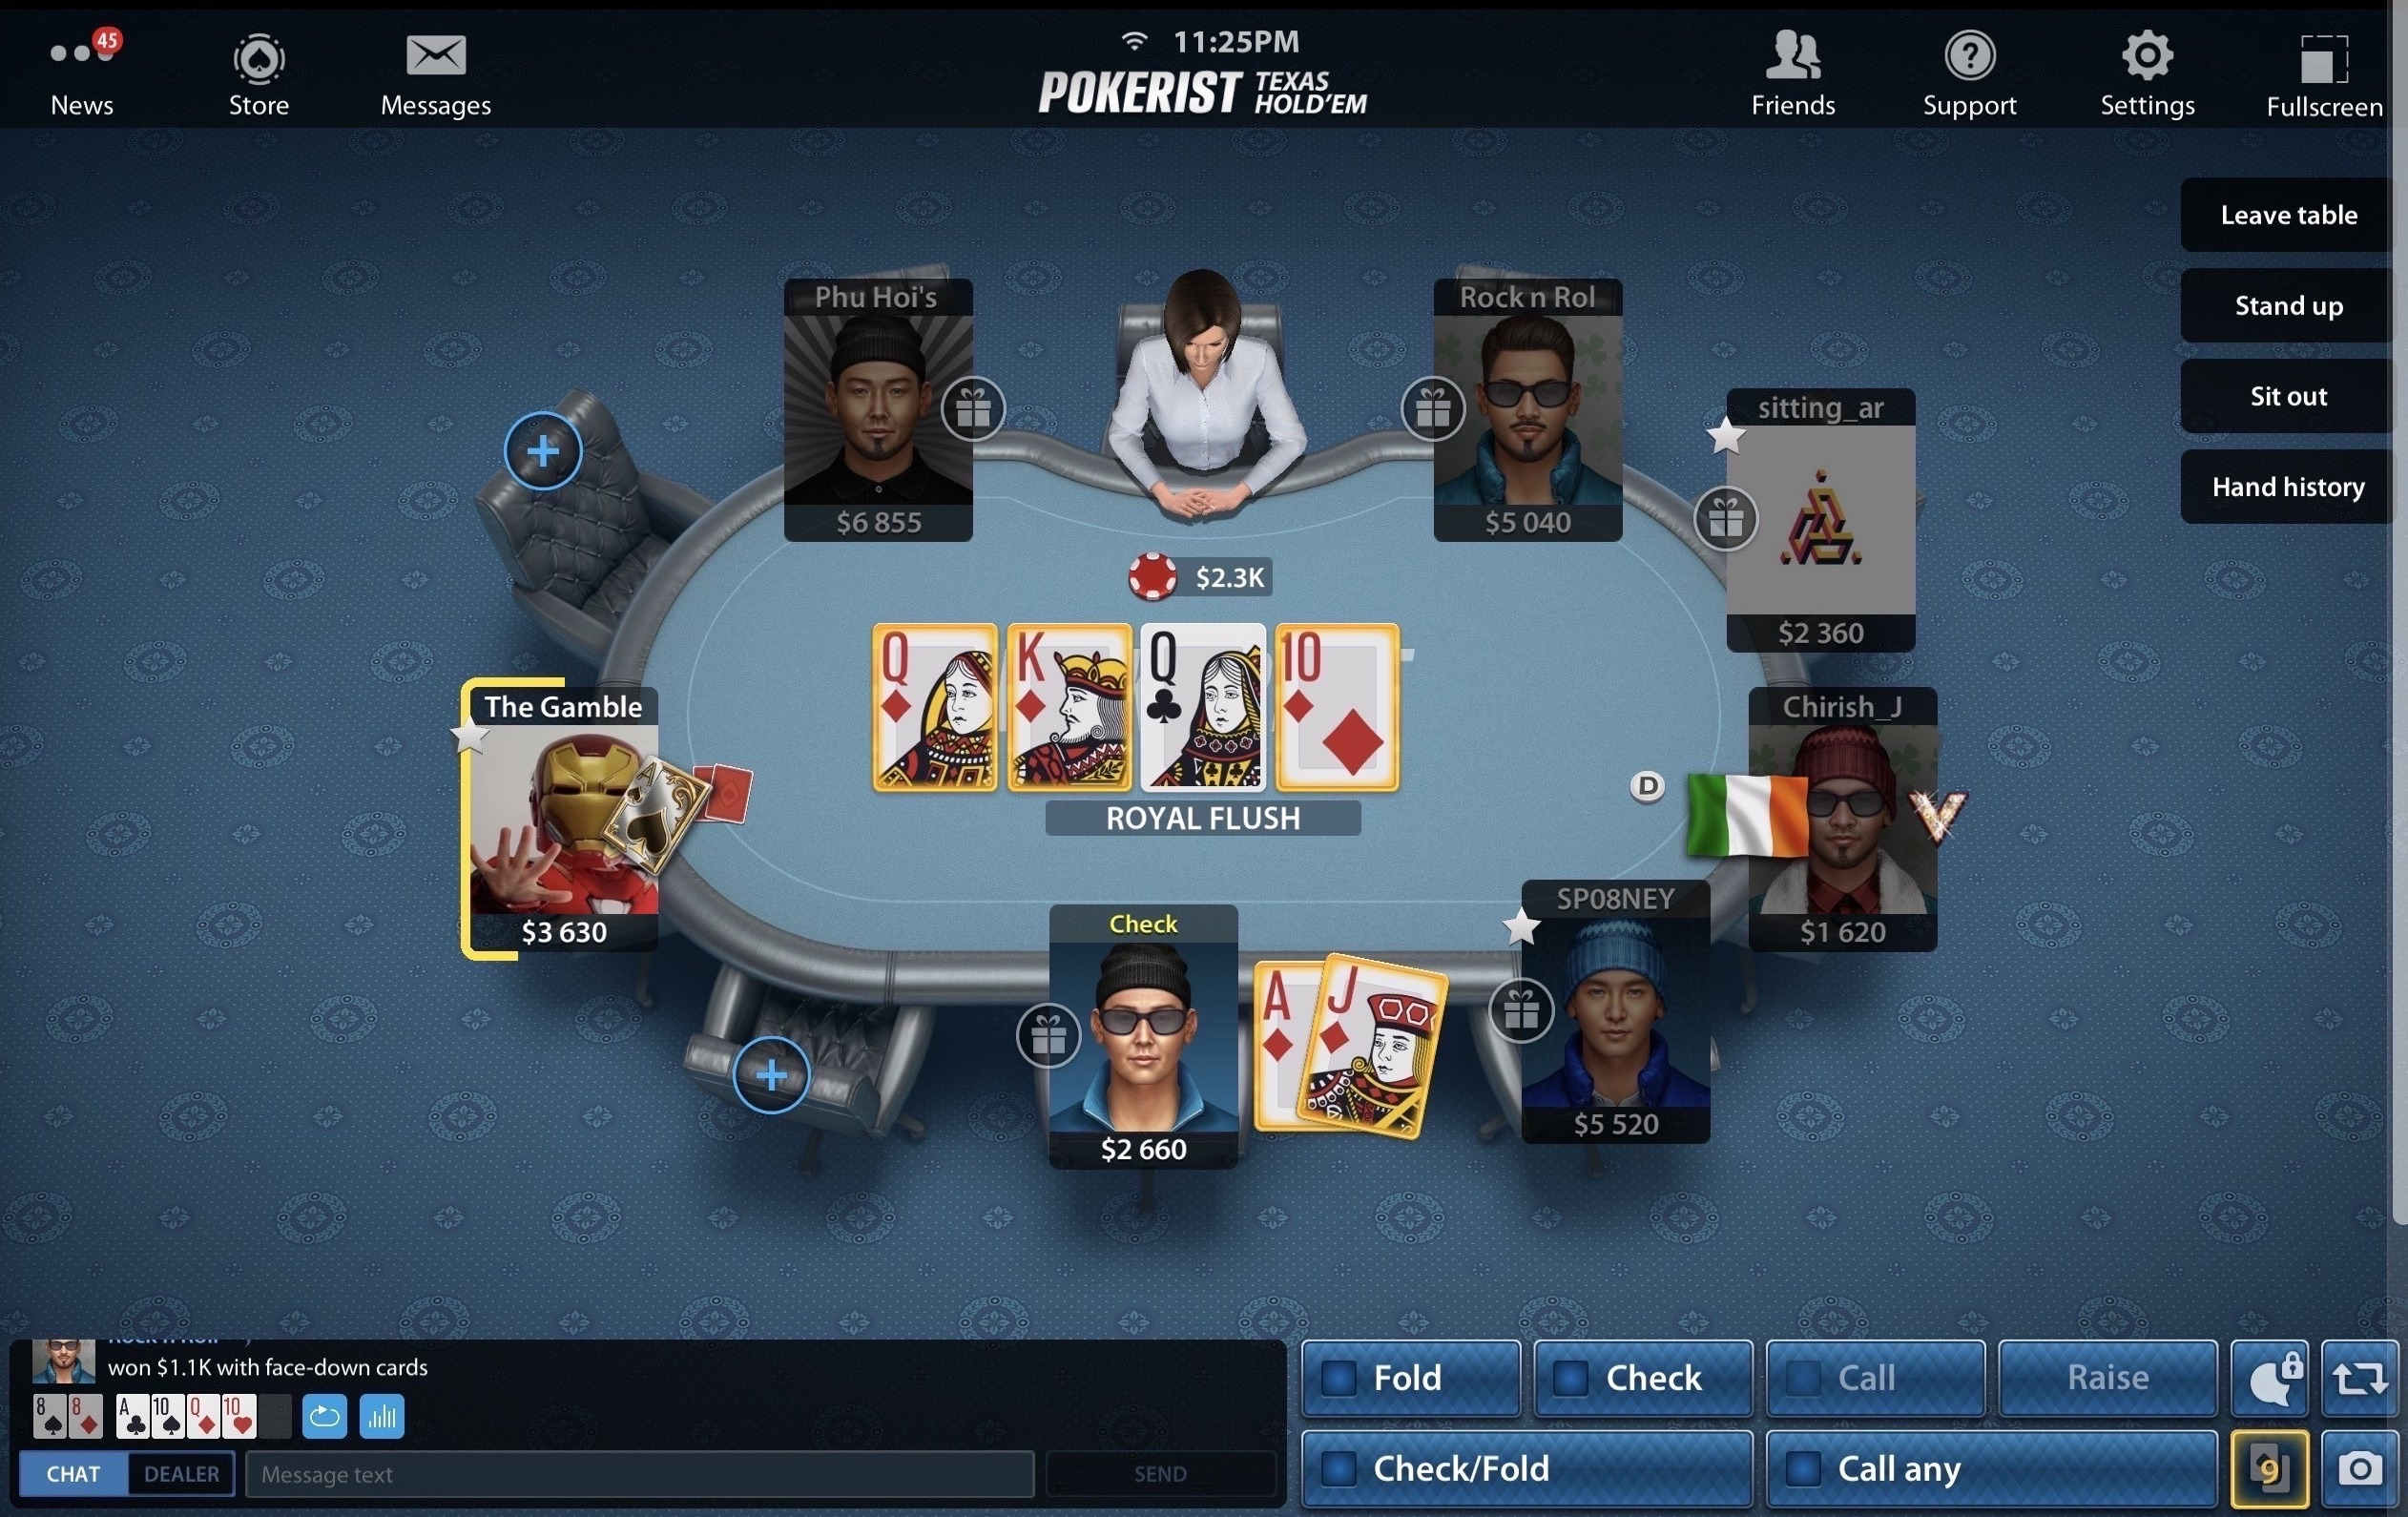 royal flush on pokerist